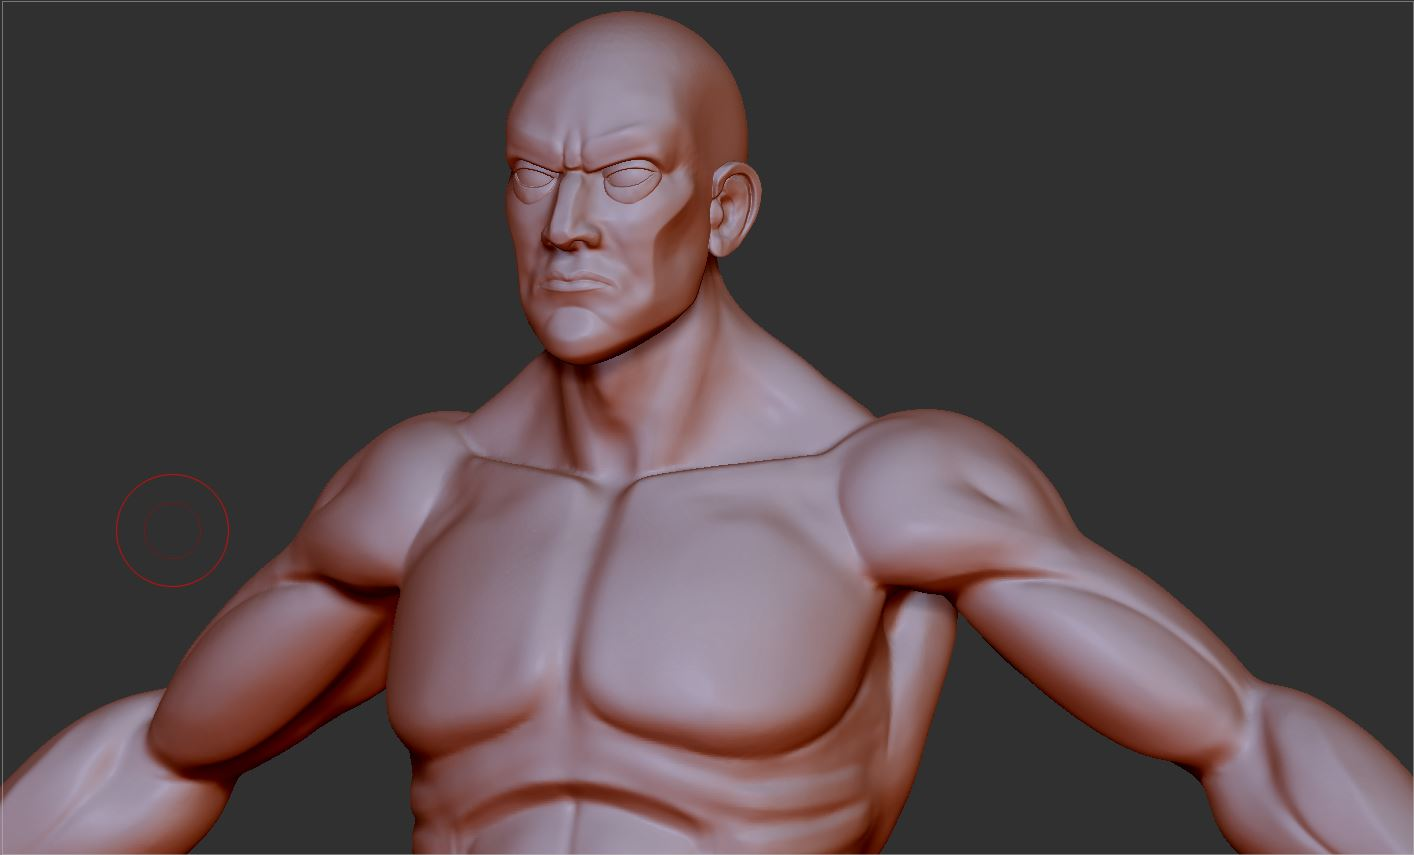 Sculpt_closeUp